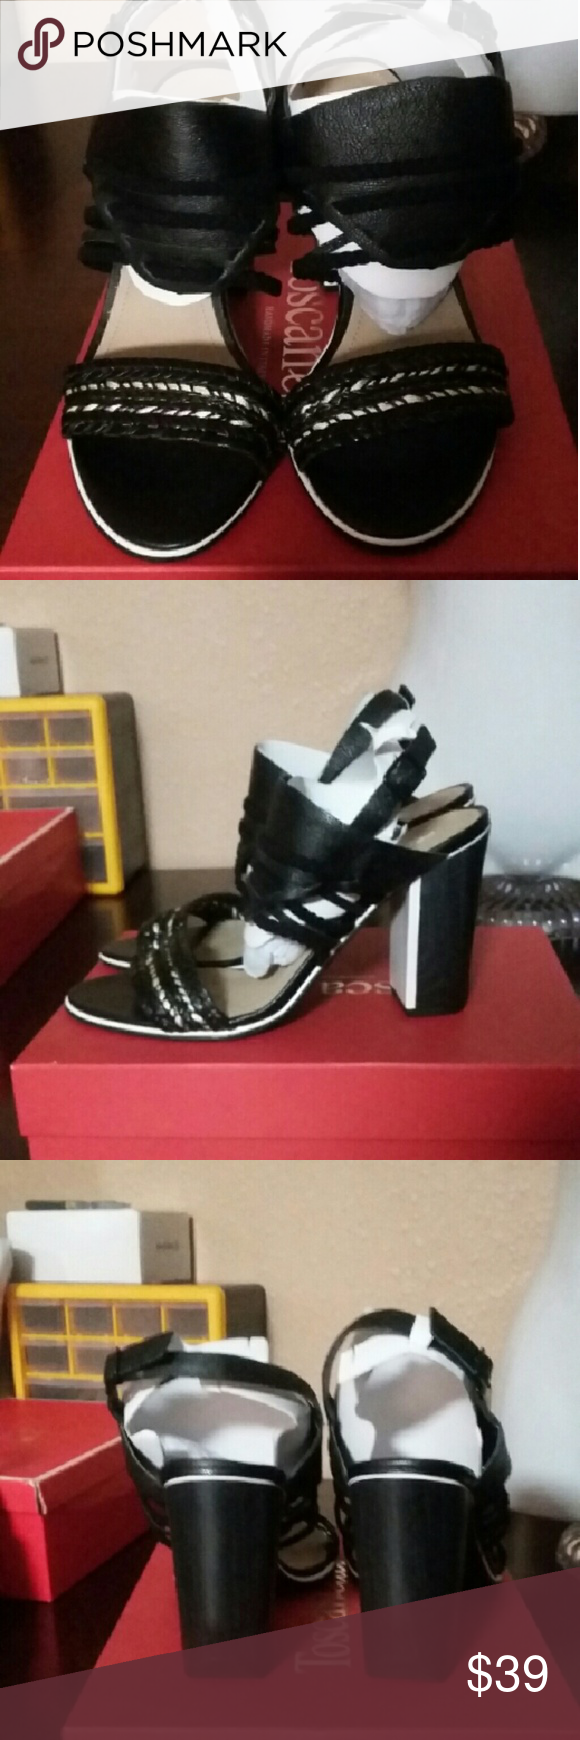 Kenneth Cole Reaction Black Leather Sandals 9 BRAND SPANKING NEW, comes with box pictured (not original) Kenneth Cole Reaction Black Leather Sandals 9. These are just beautiful! Retails  $79.00 Kenneth Cole Reaction Shoes Sandals